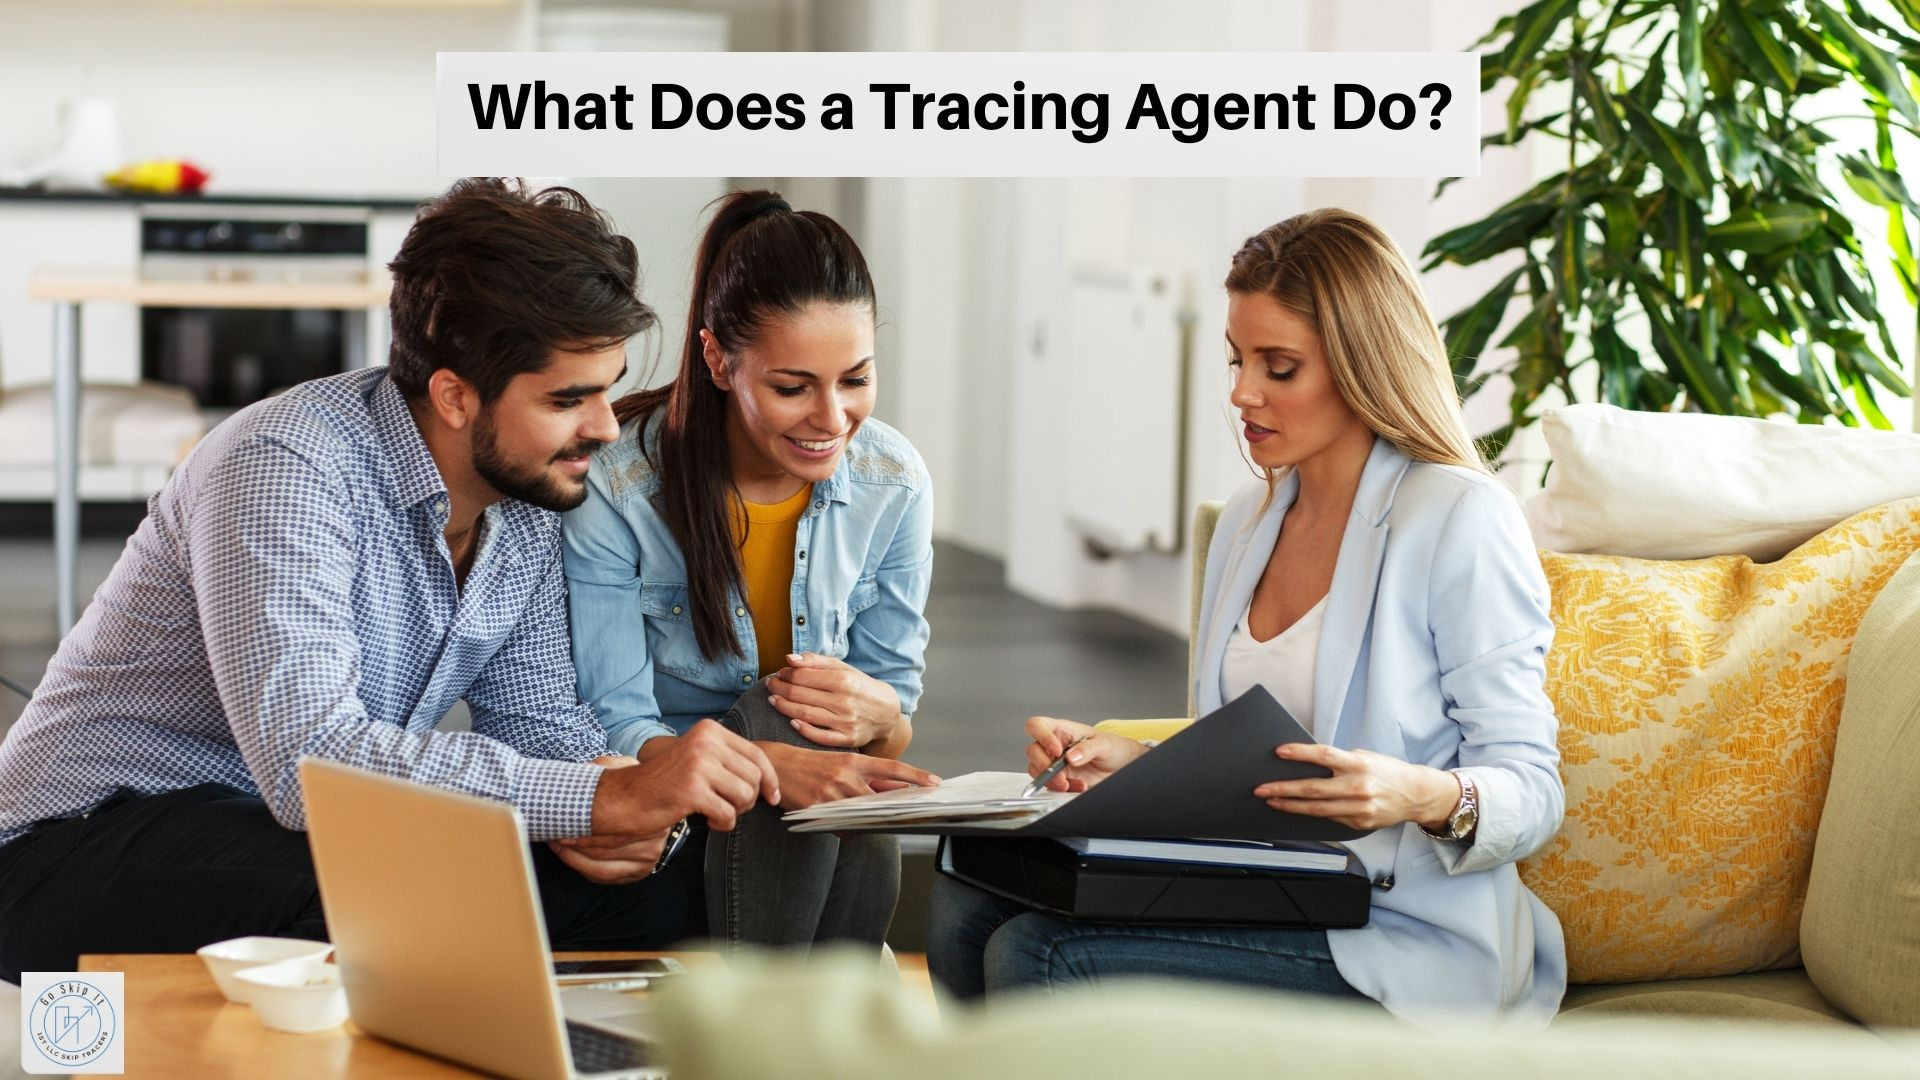 What Does a Tracing Agent Do?